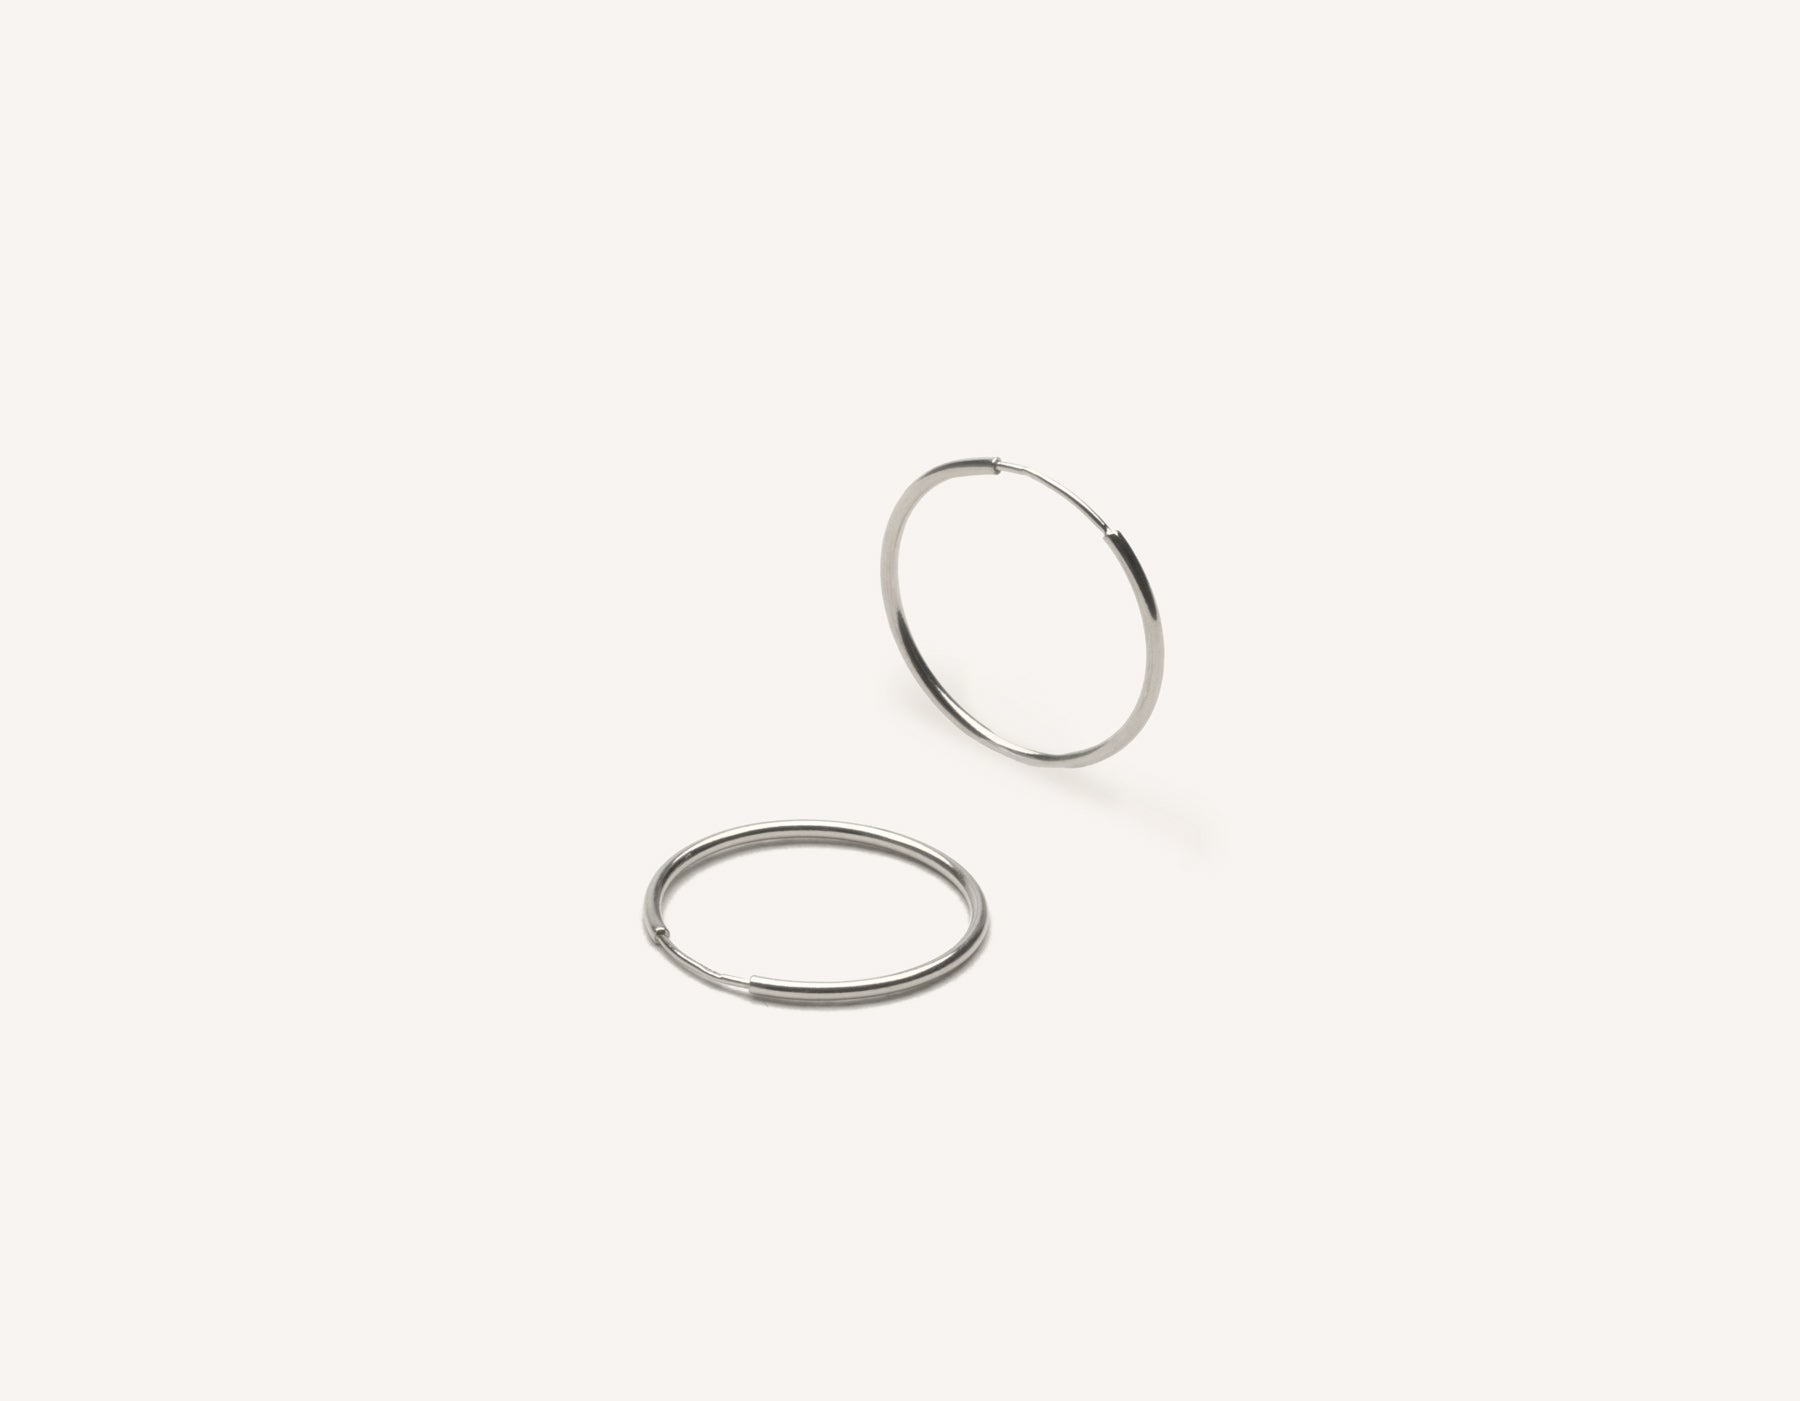 Simple classic thin Medium Lightweight Hoops 14k solid gold Vrai and Oro minimalist jewelry, 14K White Gold